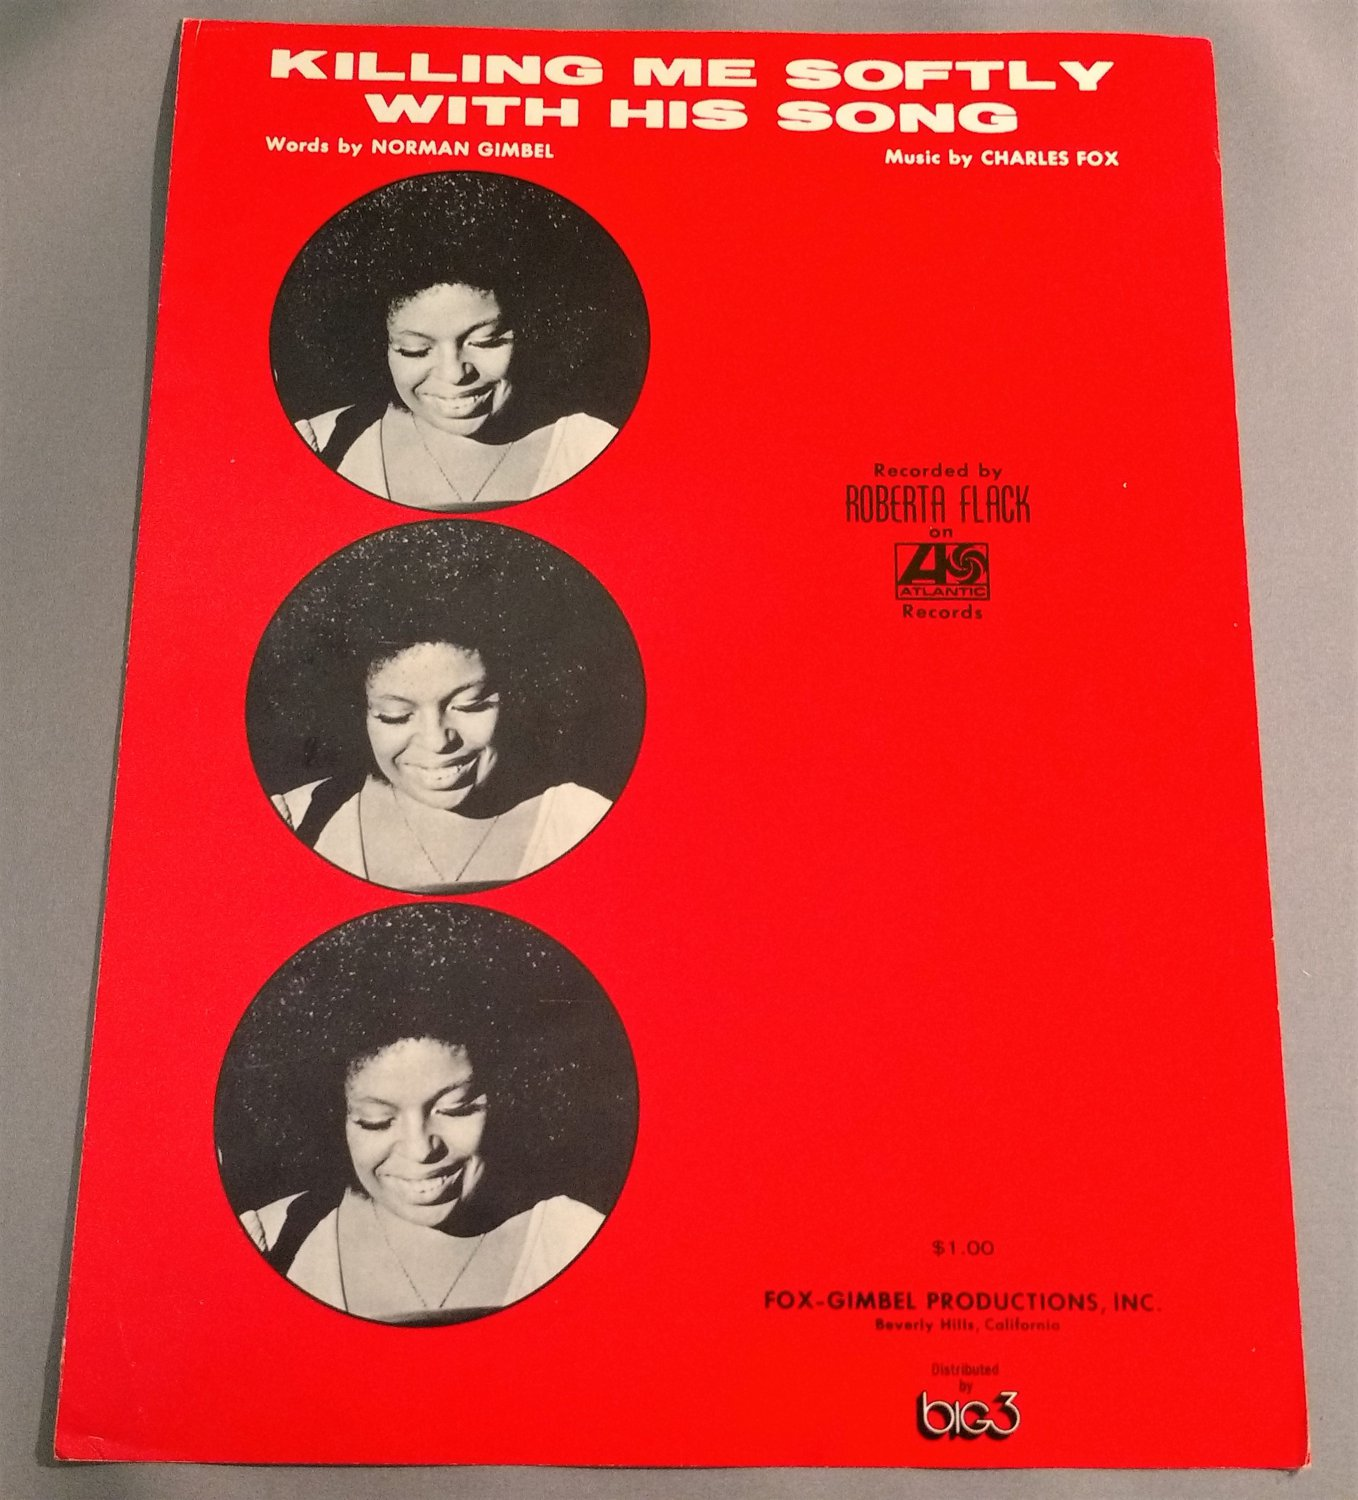 KILLING ME SOFTLY WITH HIS SONG Sheet Music ROBERTA FLACK 1972 Cover Photos